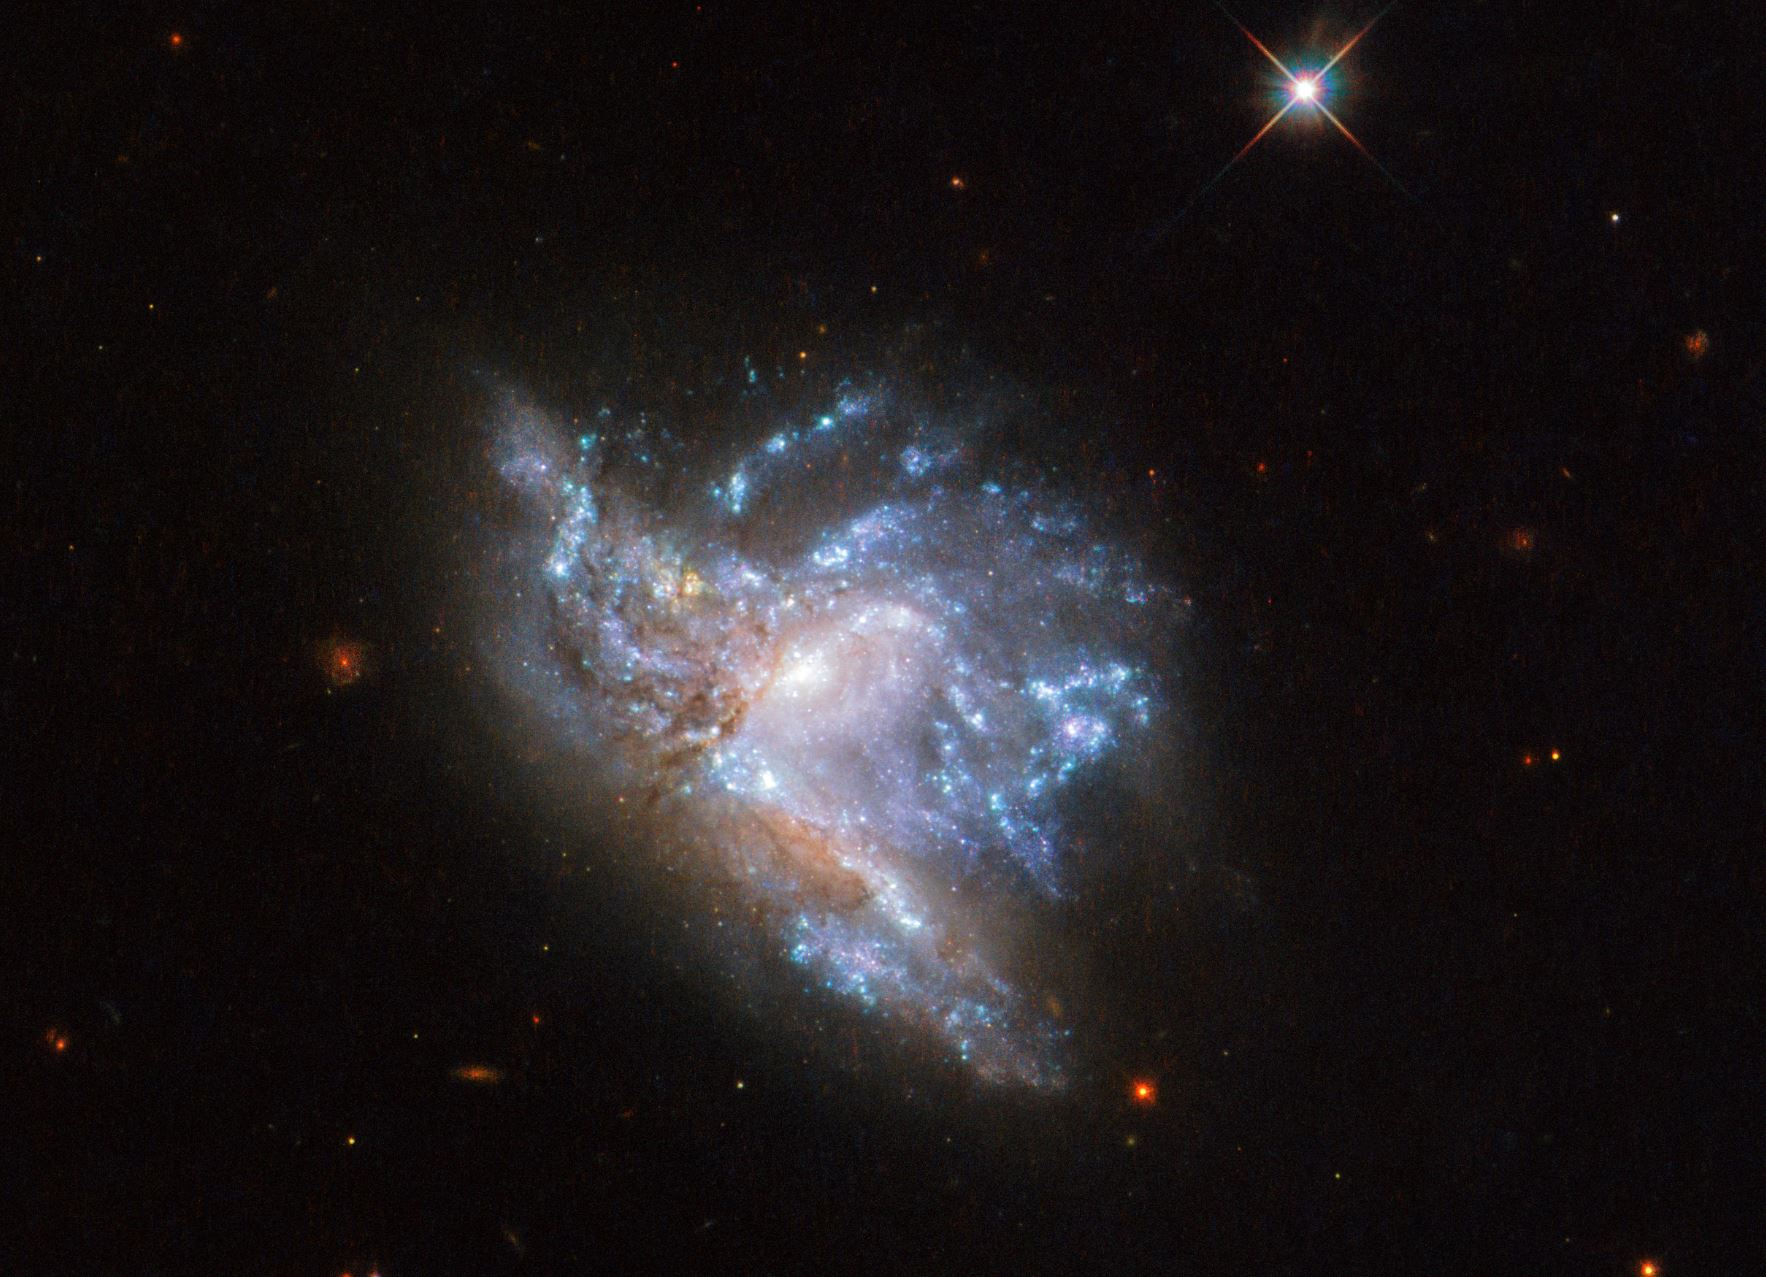 Located in the constellation of Hercules , about 230 million light-years away, NGC 6052 is a pair of colliding galaxies.- Image Credits: ESA/Hubble & NASA, A. Adamo et al.